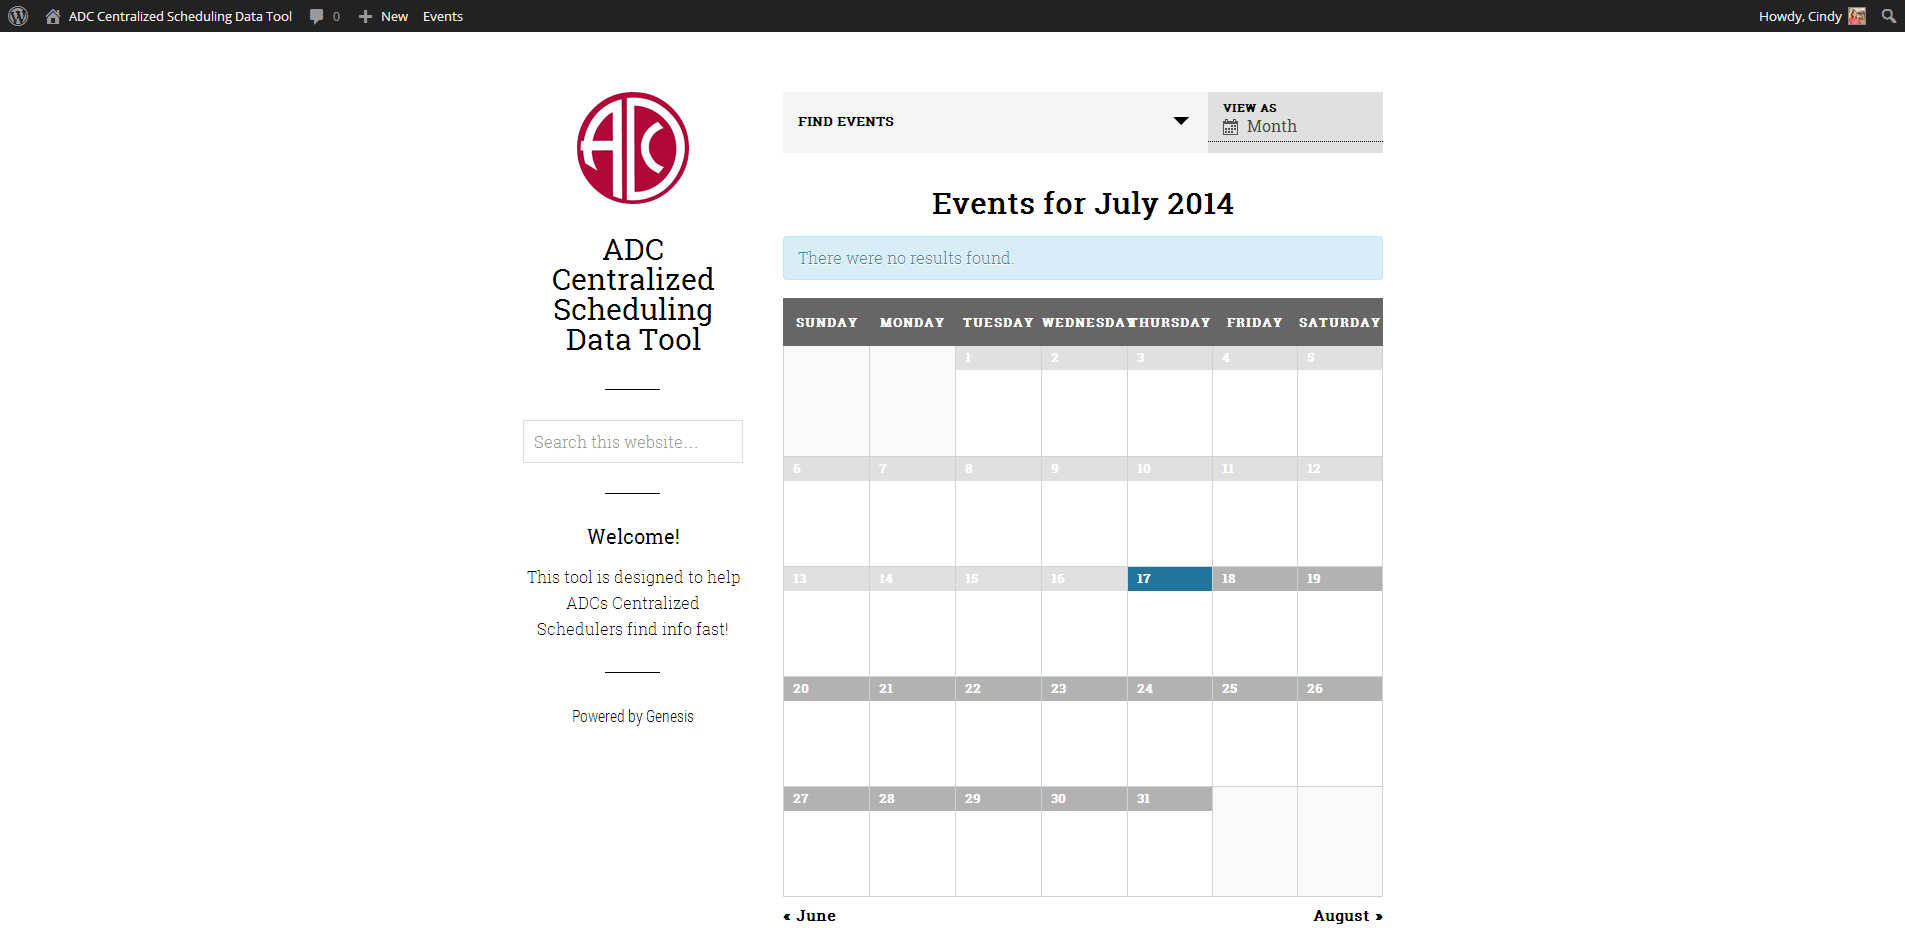 events-this-month-adc-centralized-scheduling